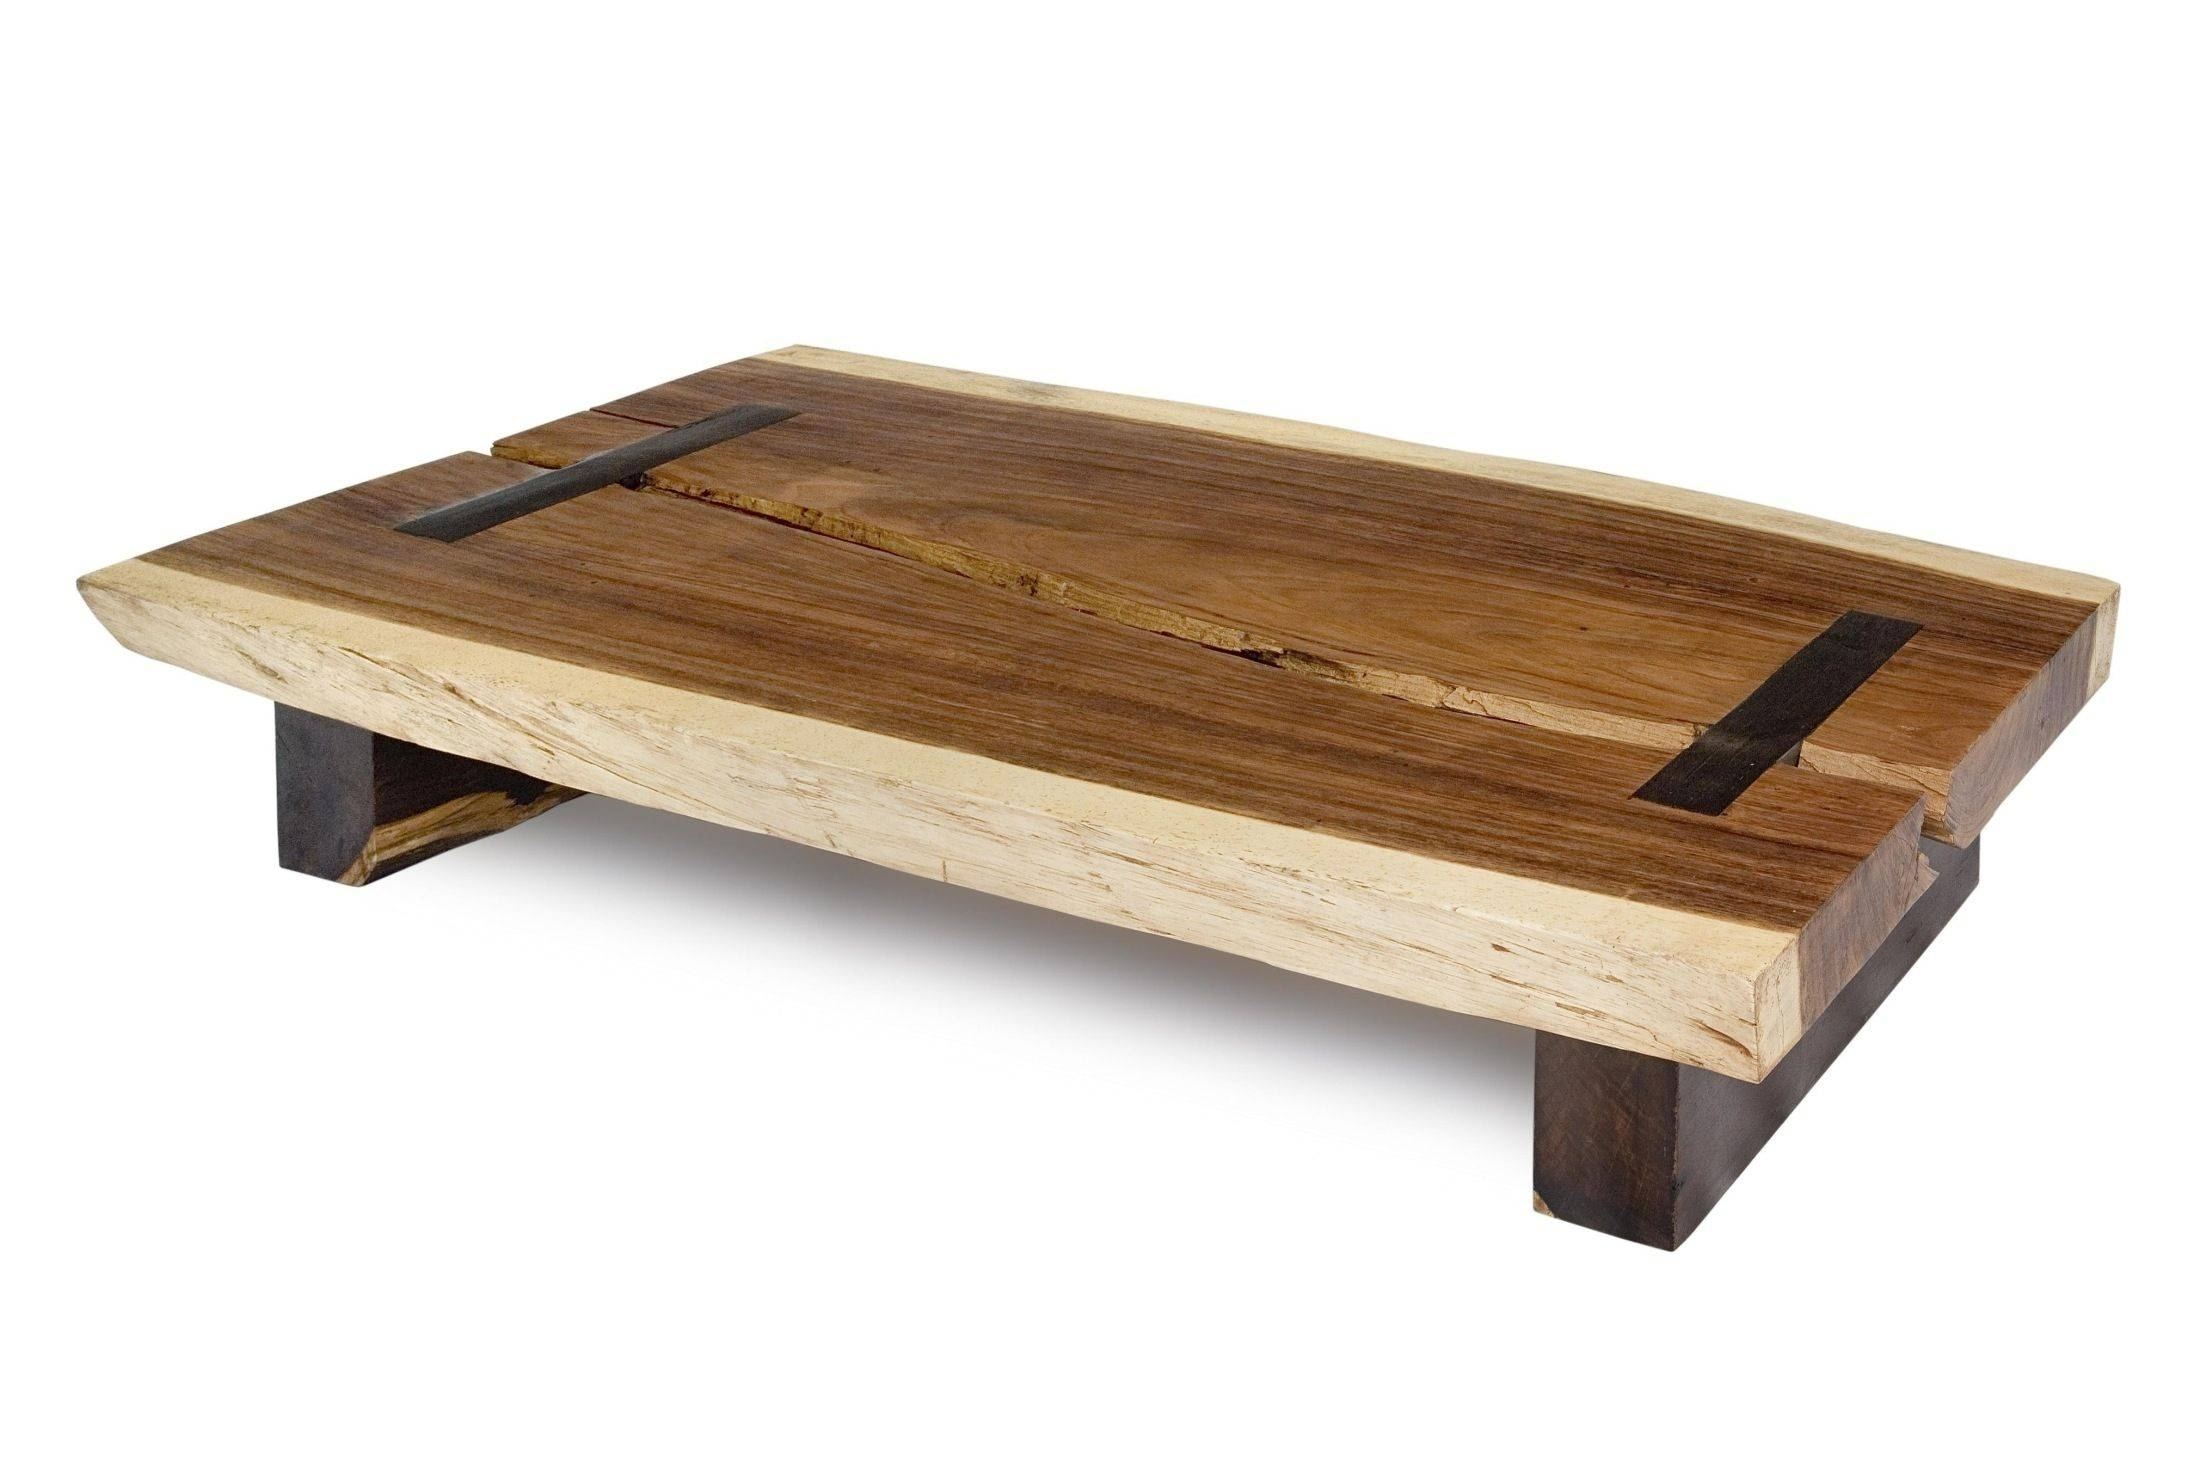 Reclaimed Wood Coffee Table Sets - Coffee Addicts for Natural Wood Coffee Tables (Image 12 of 15)